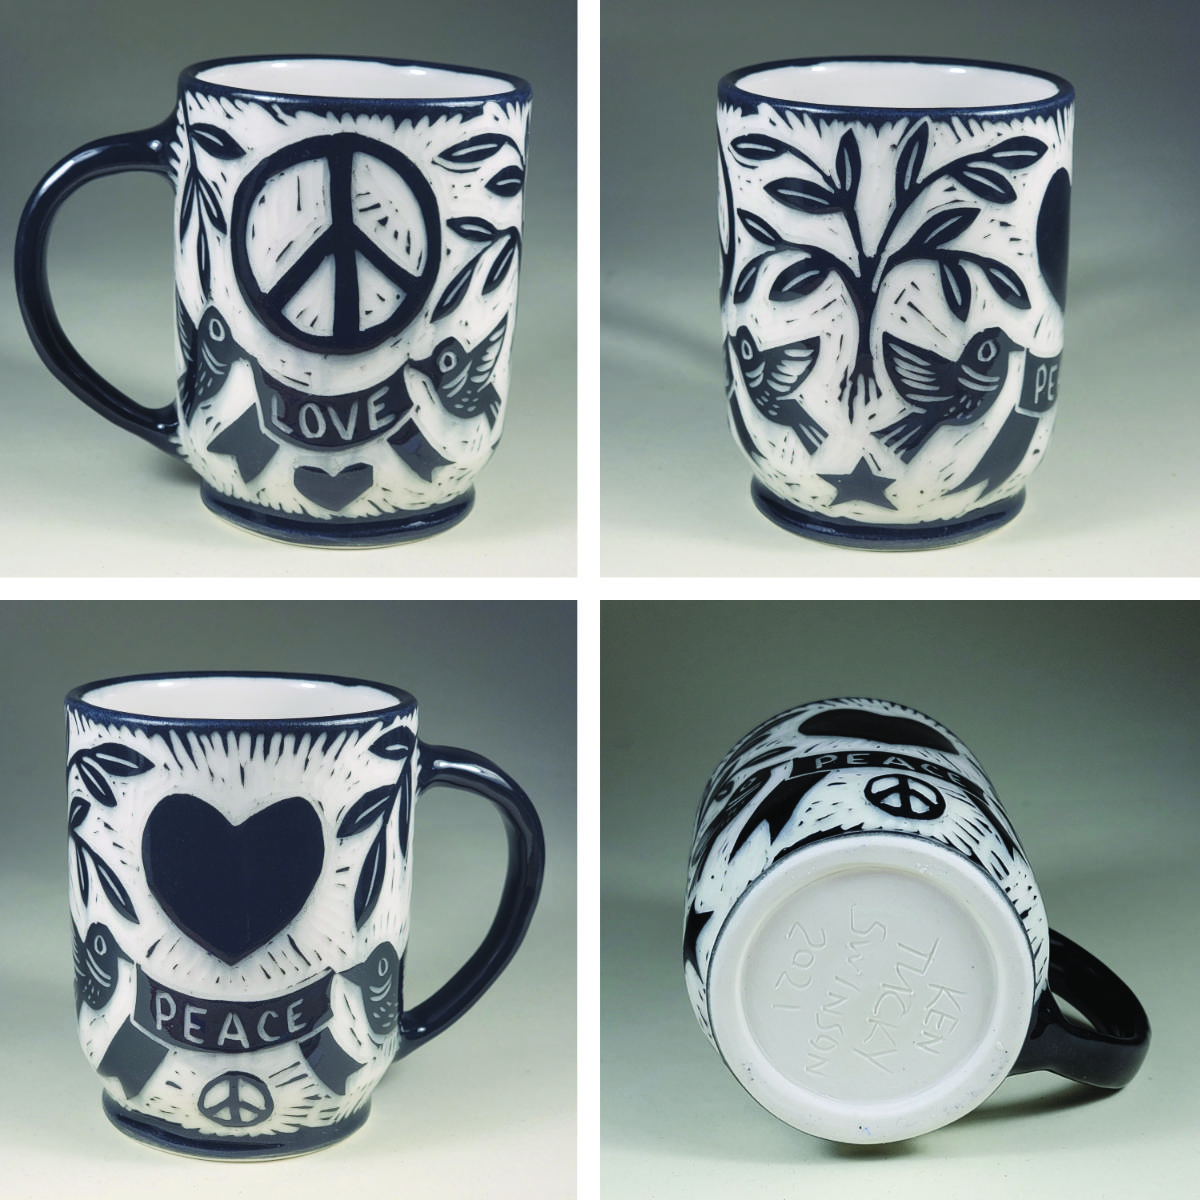 porcelain cup with peace and love sgraffito design